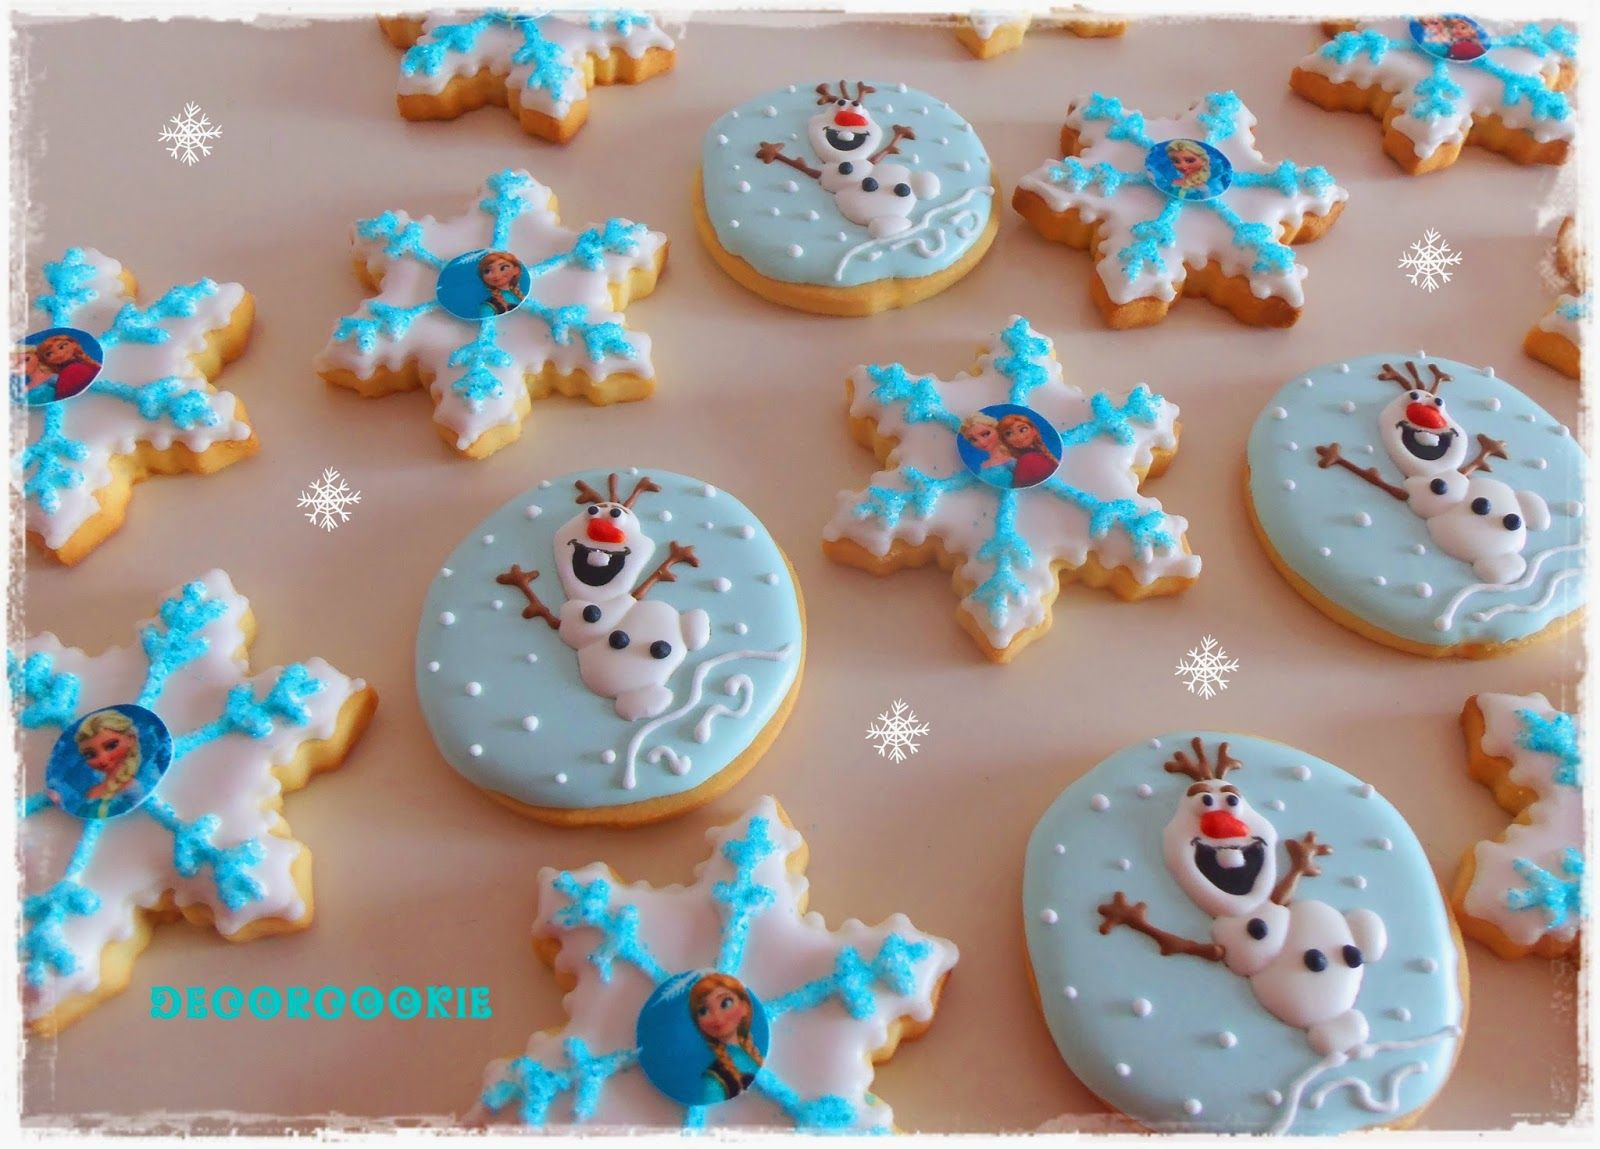 Galletas Decoradas De Princesas Galletas Decoradas De Frozen Elsa Ana Y Olaf Mis